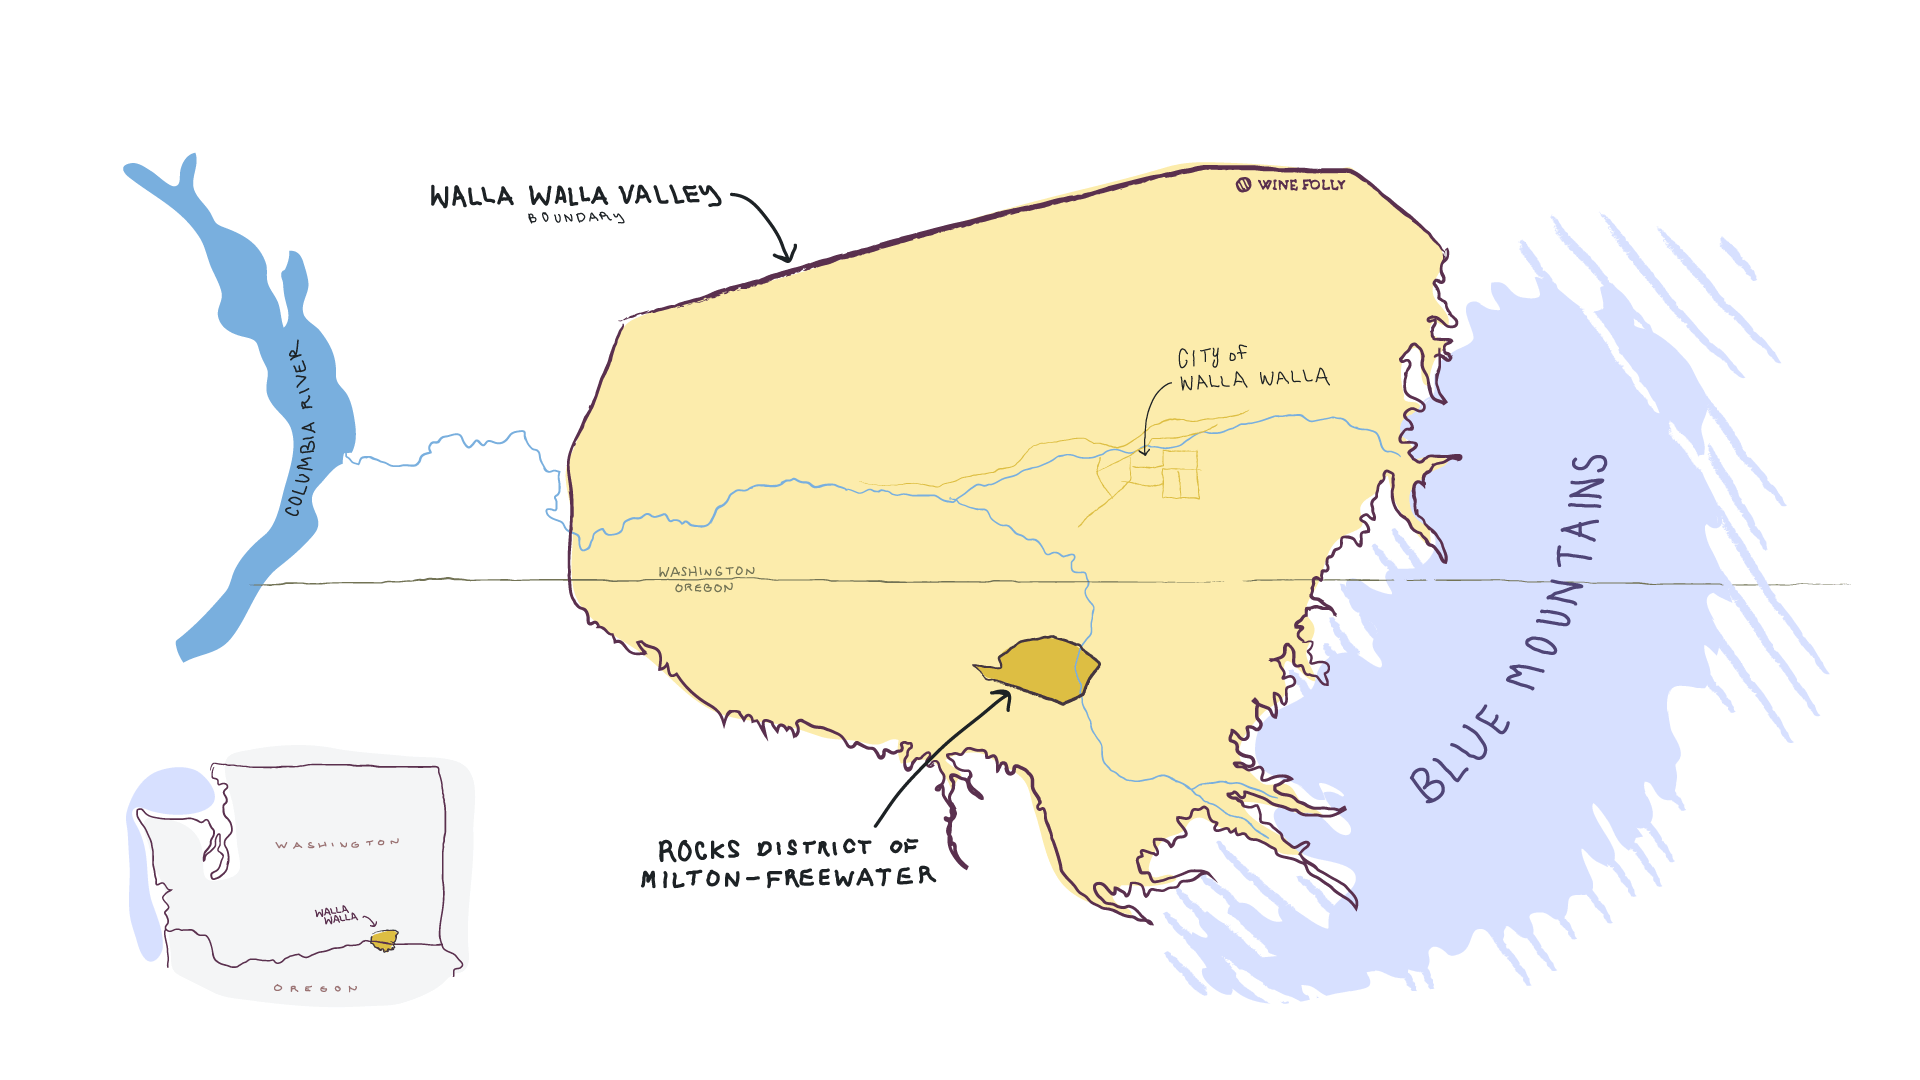 A drawing-style yellow and blue map of  the Walla Walla Valley, showing the Rocks District and Blue Mountains.